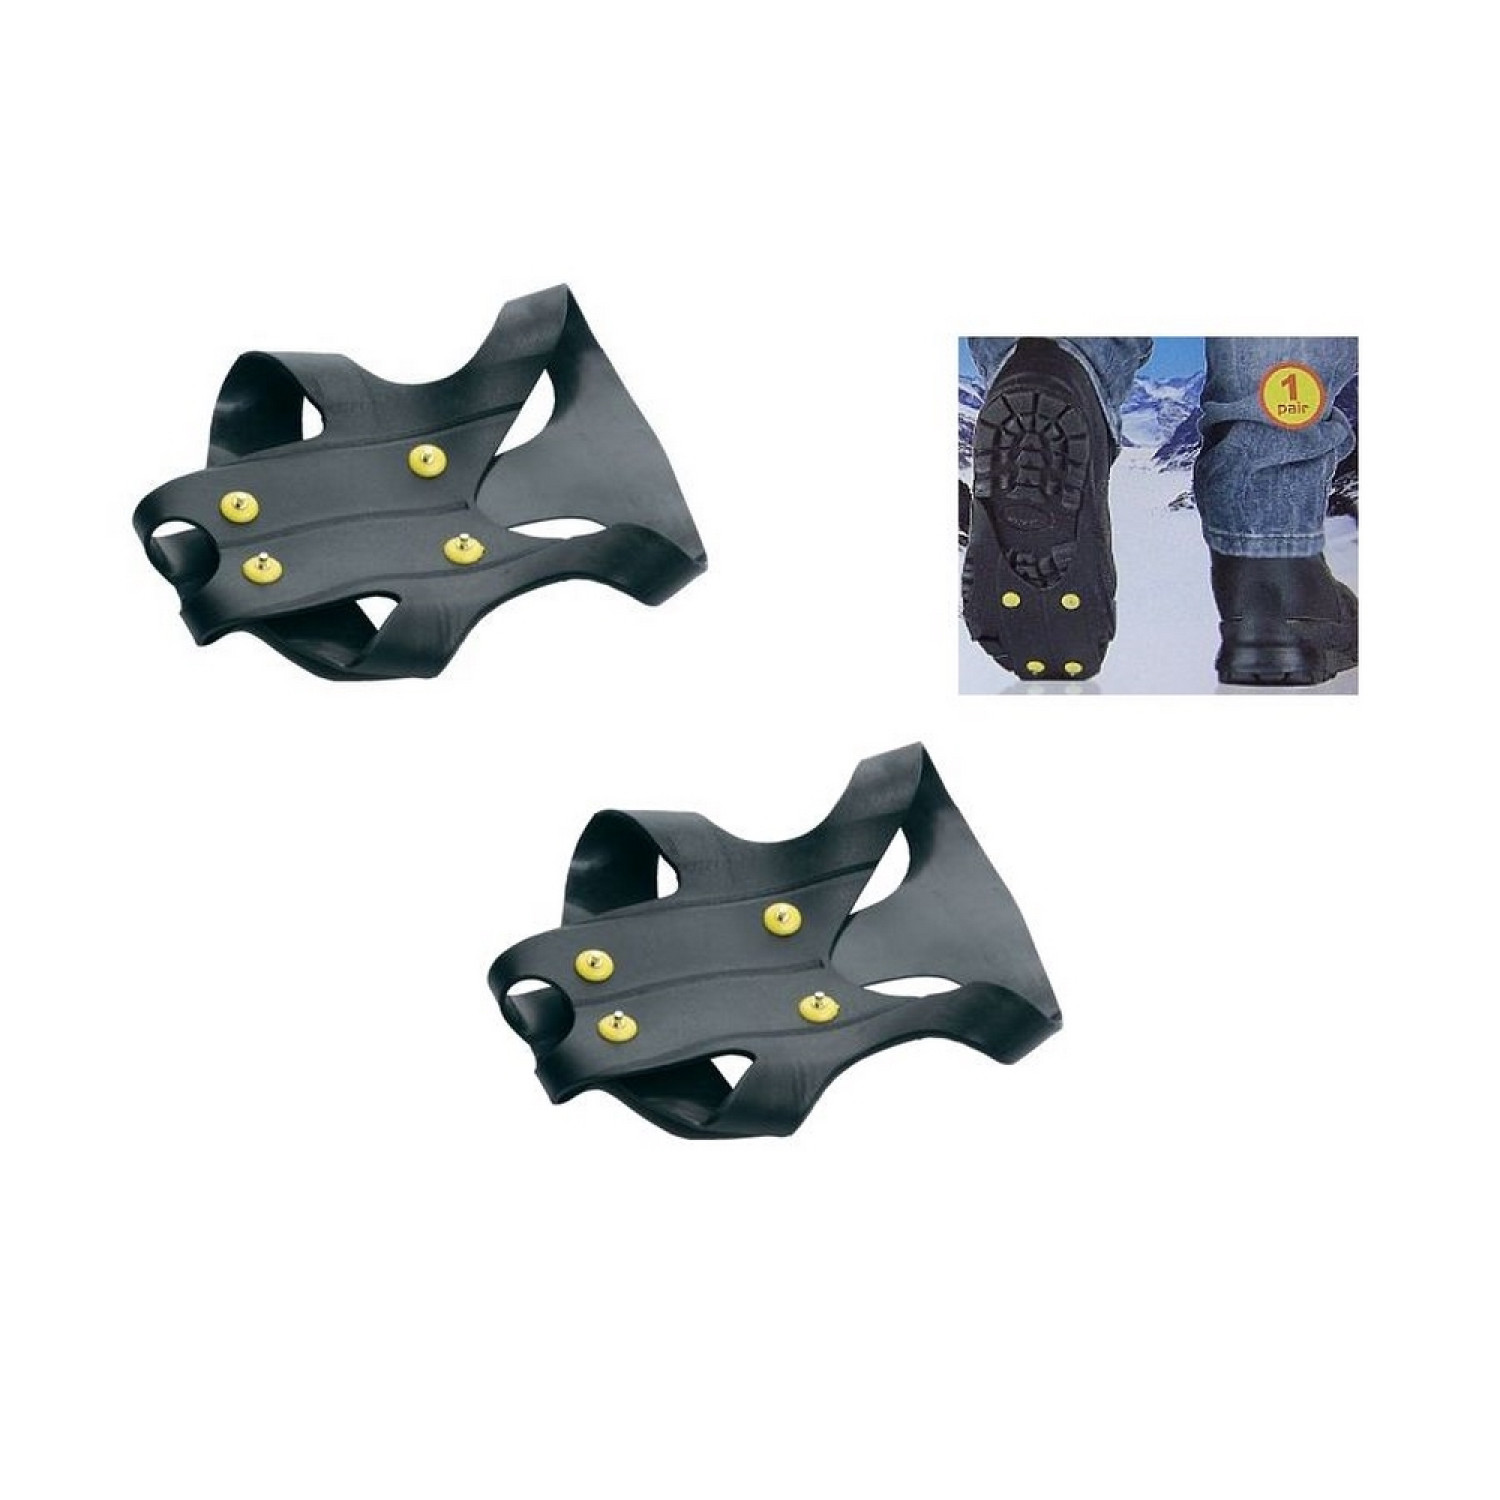 Crampons anti-glisse - Non slip ice treads - Taille 43/48 - ABS